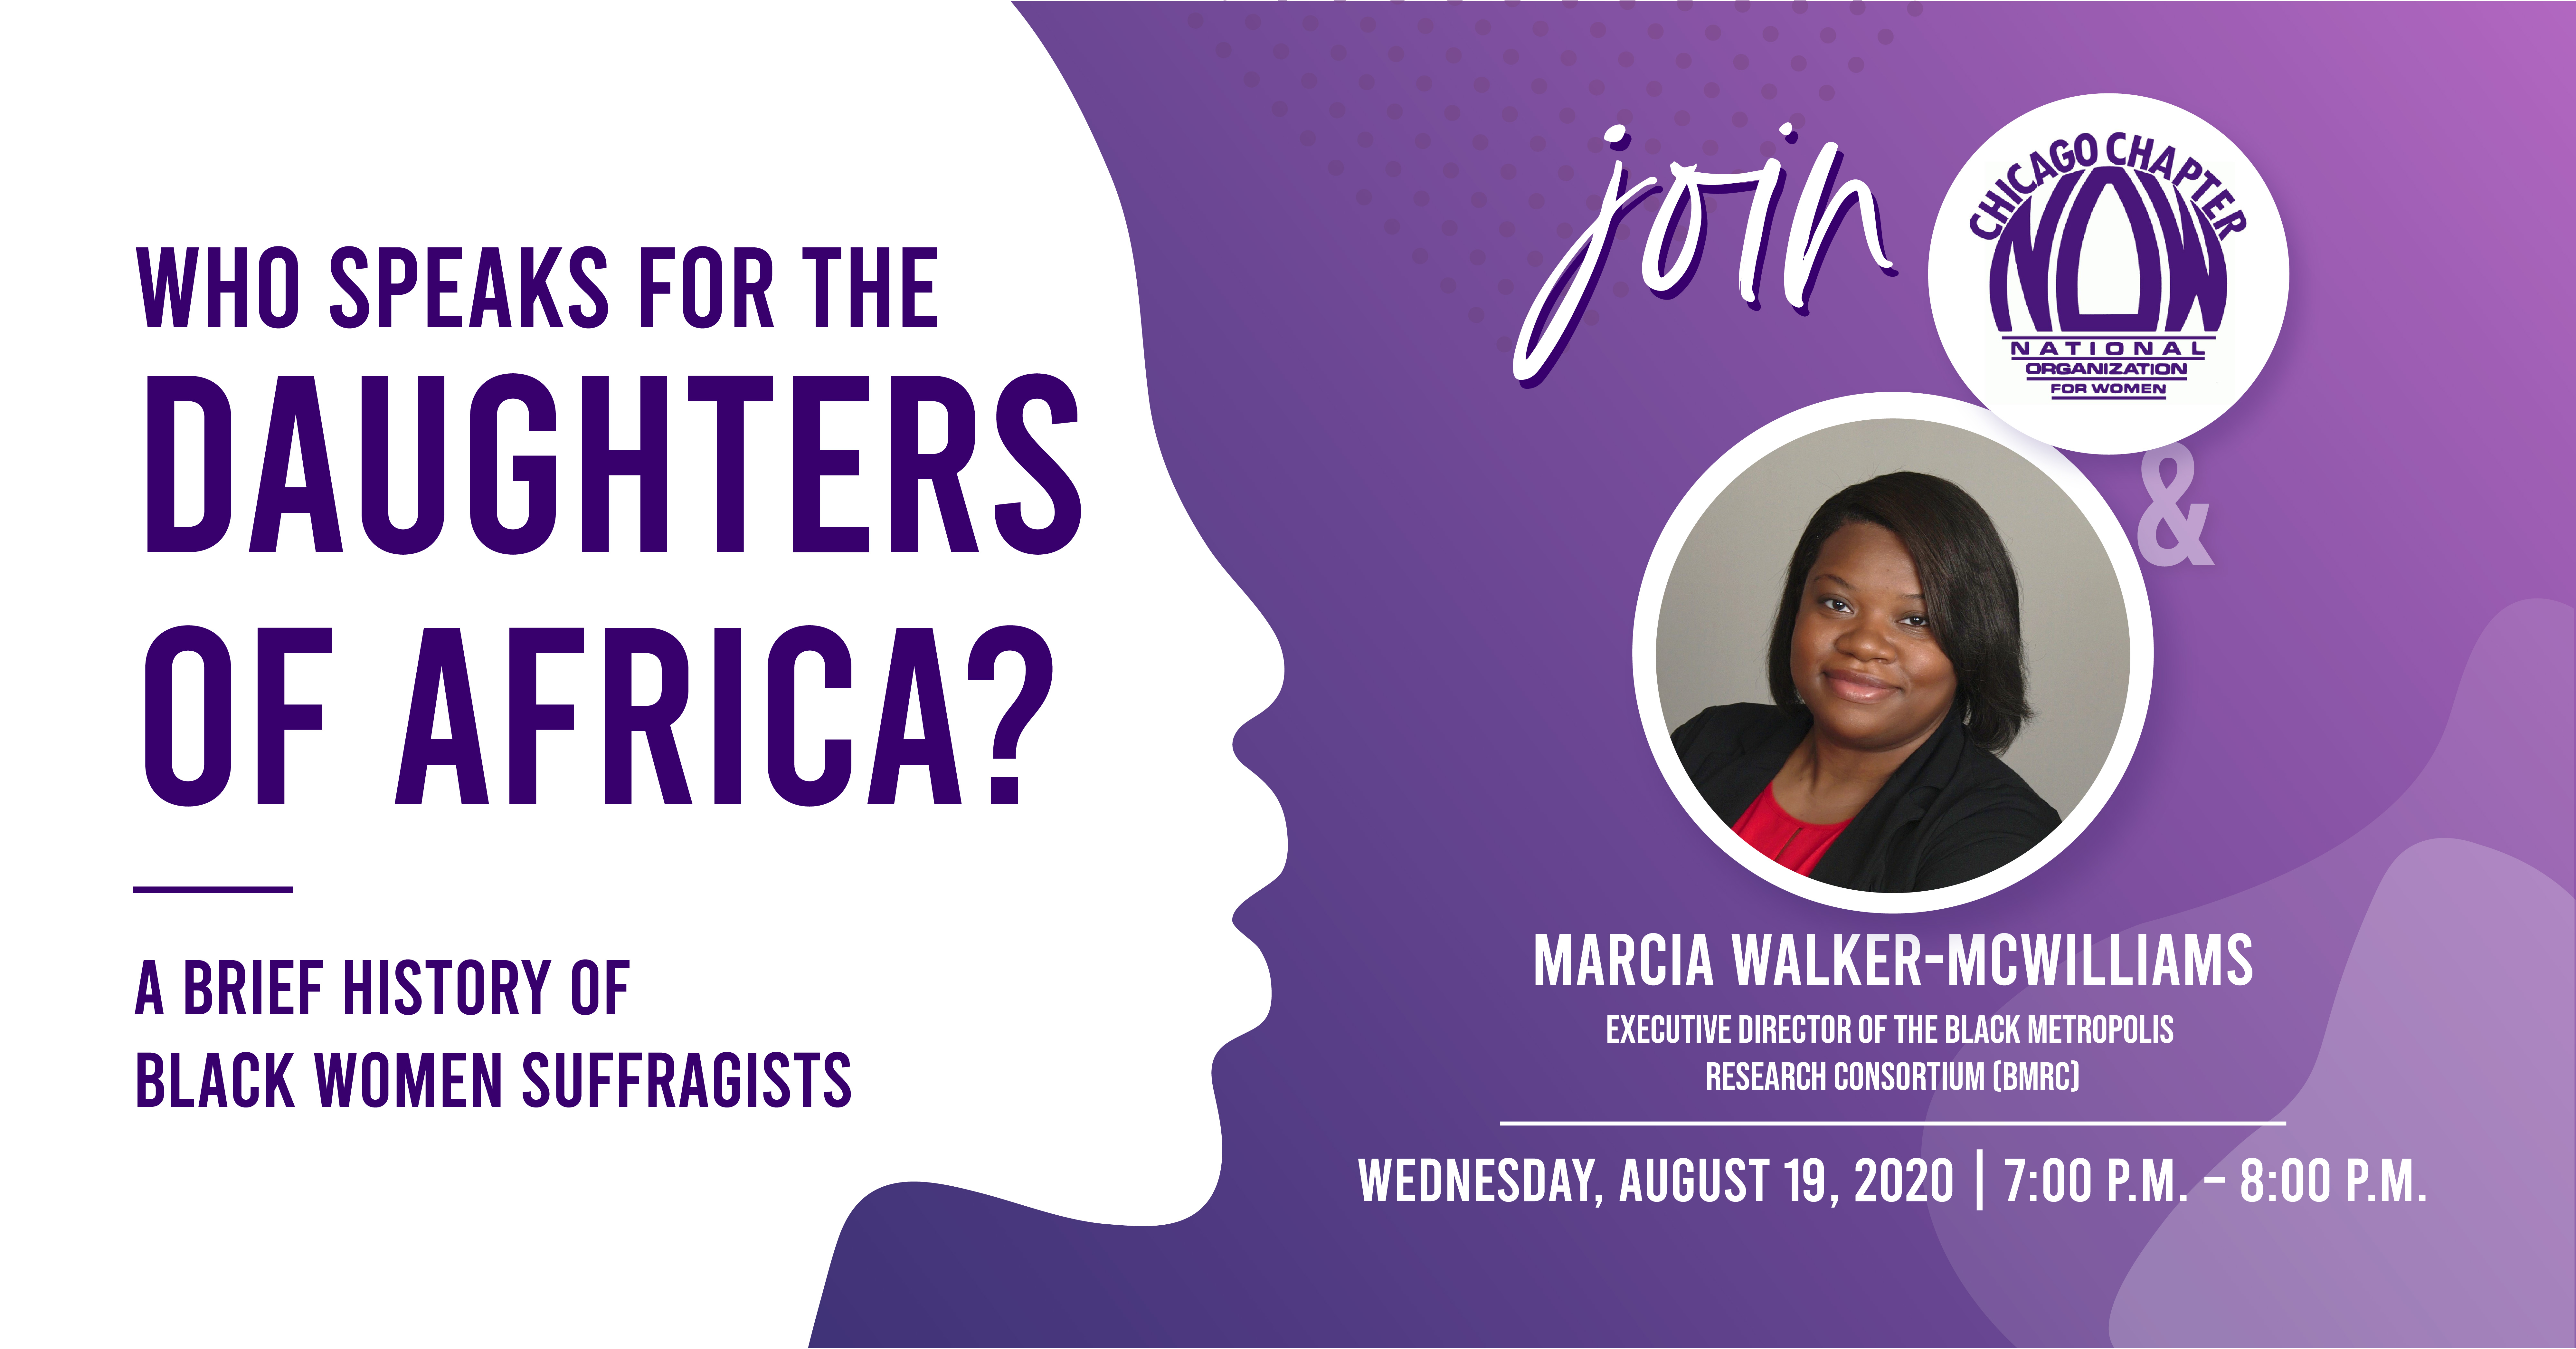 "CNOW Virtual Event with Marcia Walker-McWilliams, Honoring Black Suffragists on the 19th Amendment Centennial|Wednesday, August 19, 2020|7:00 P.M. - 8:00 P.M."" class="